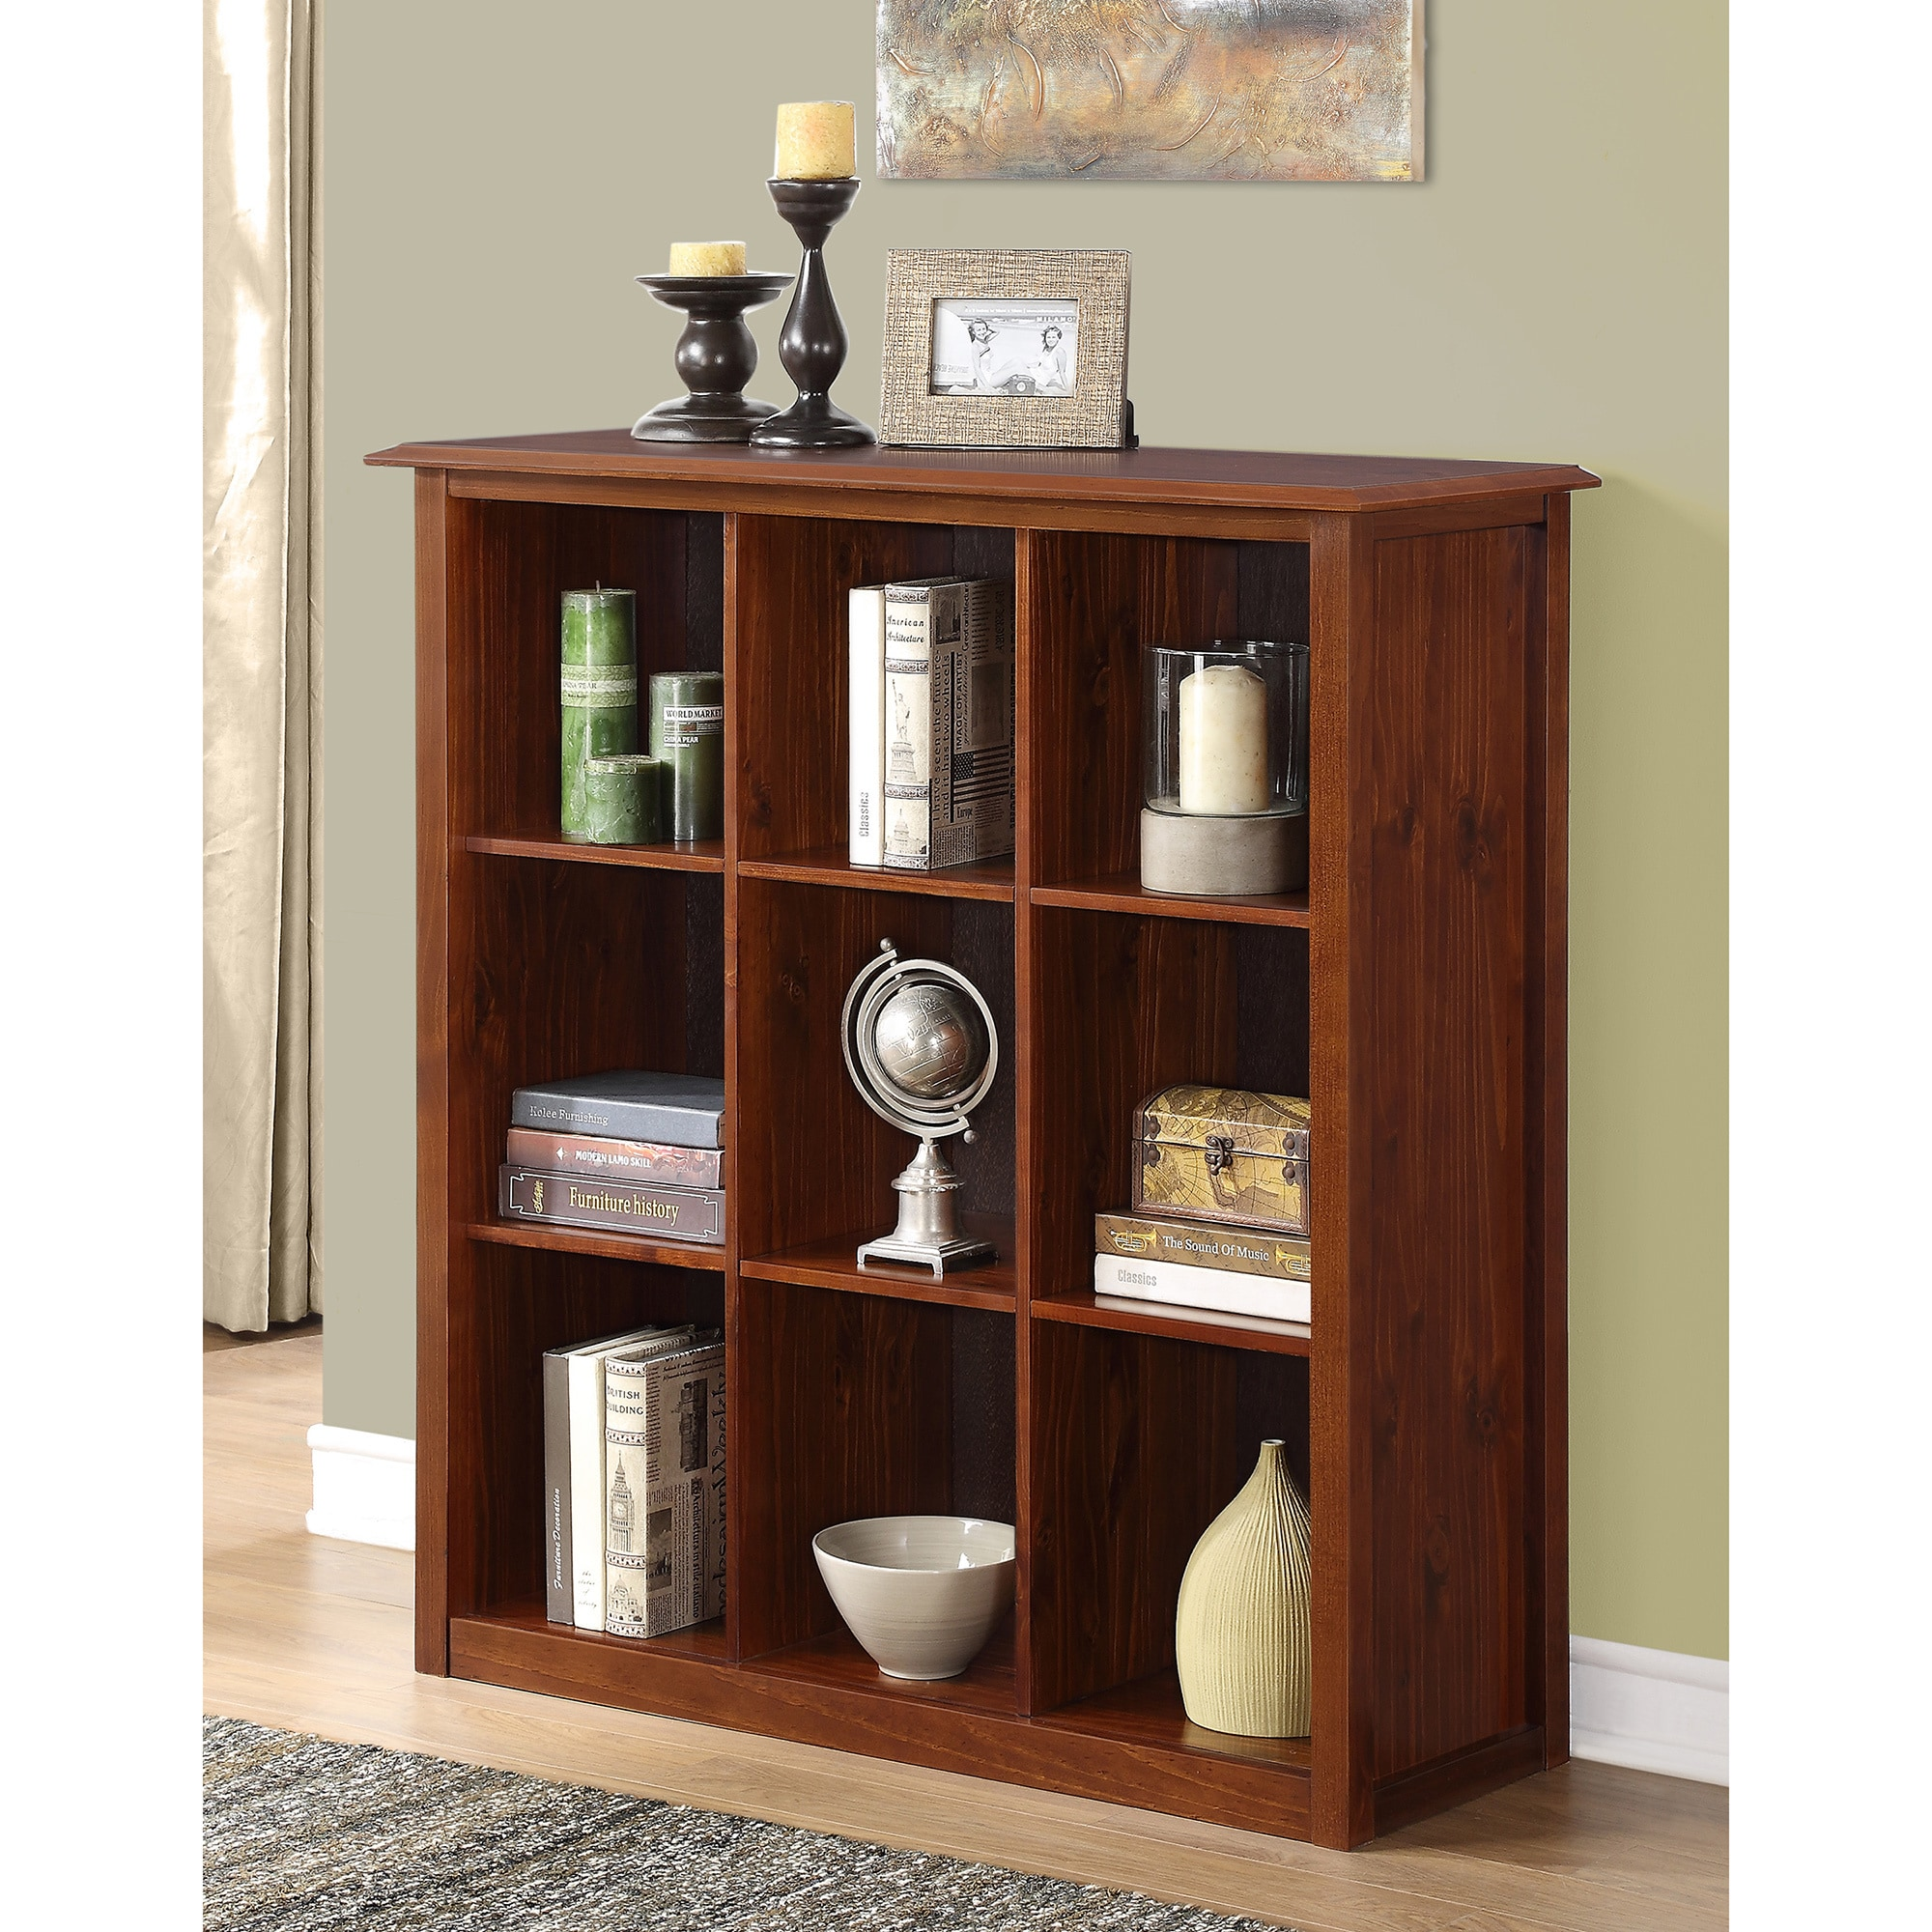 bookshelf of ip bookcases america on industrial wheels furniture cornell caster tier walmart bookcase com